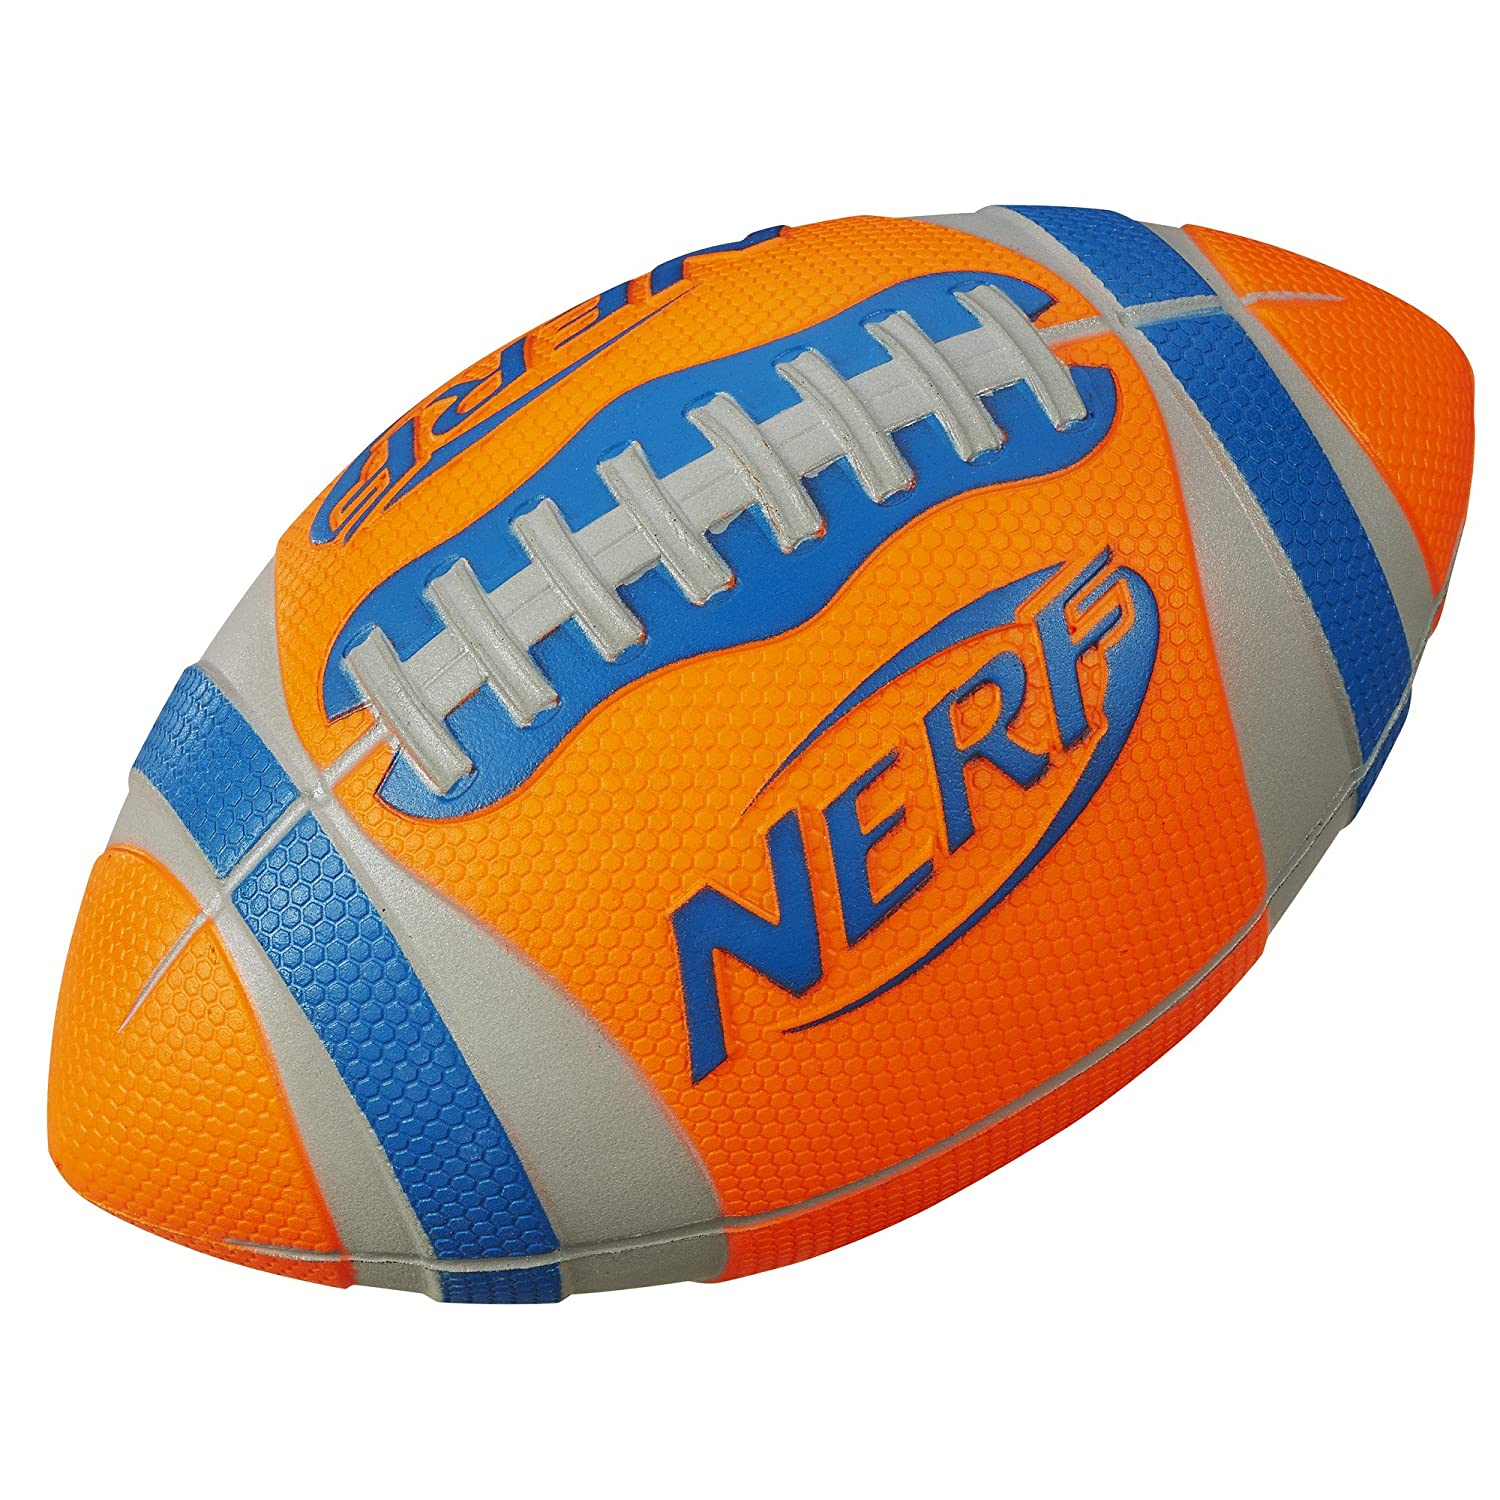 Amazon Nerf Sports Pro Grip Football Orange Toys & Games